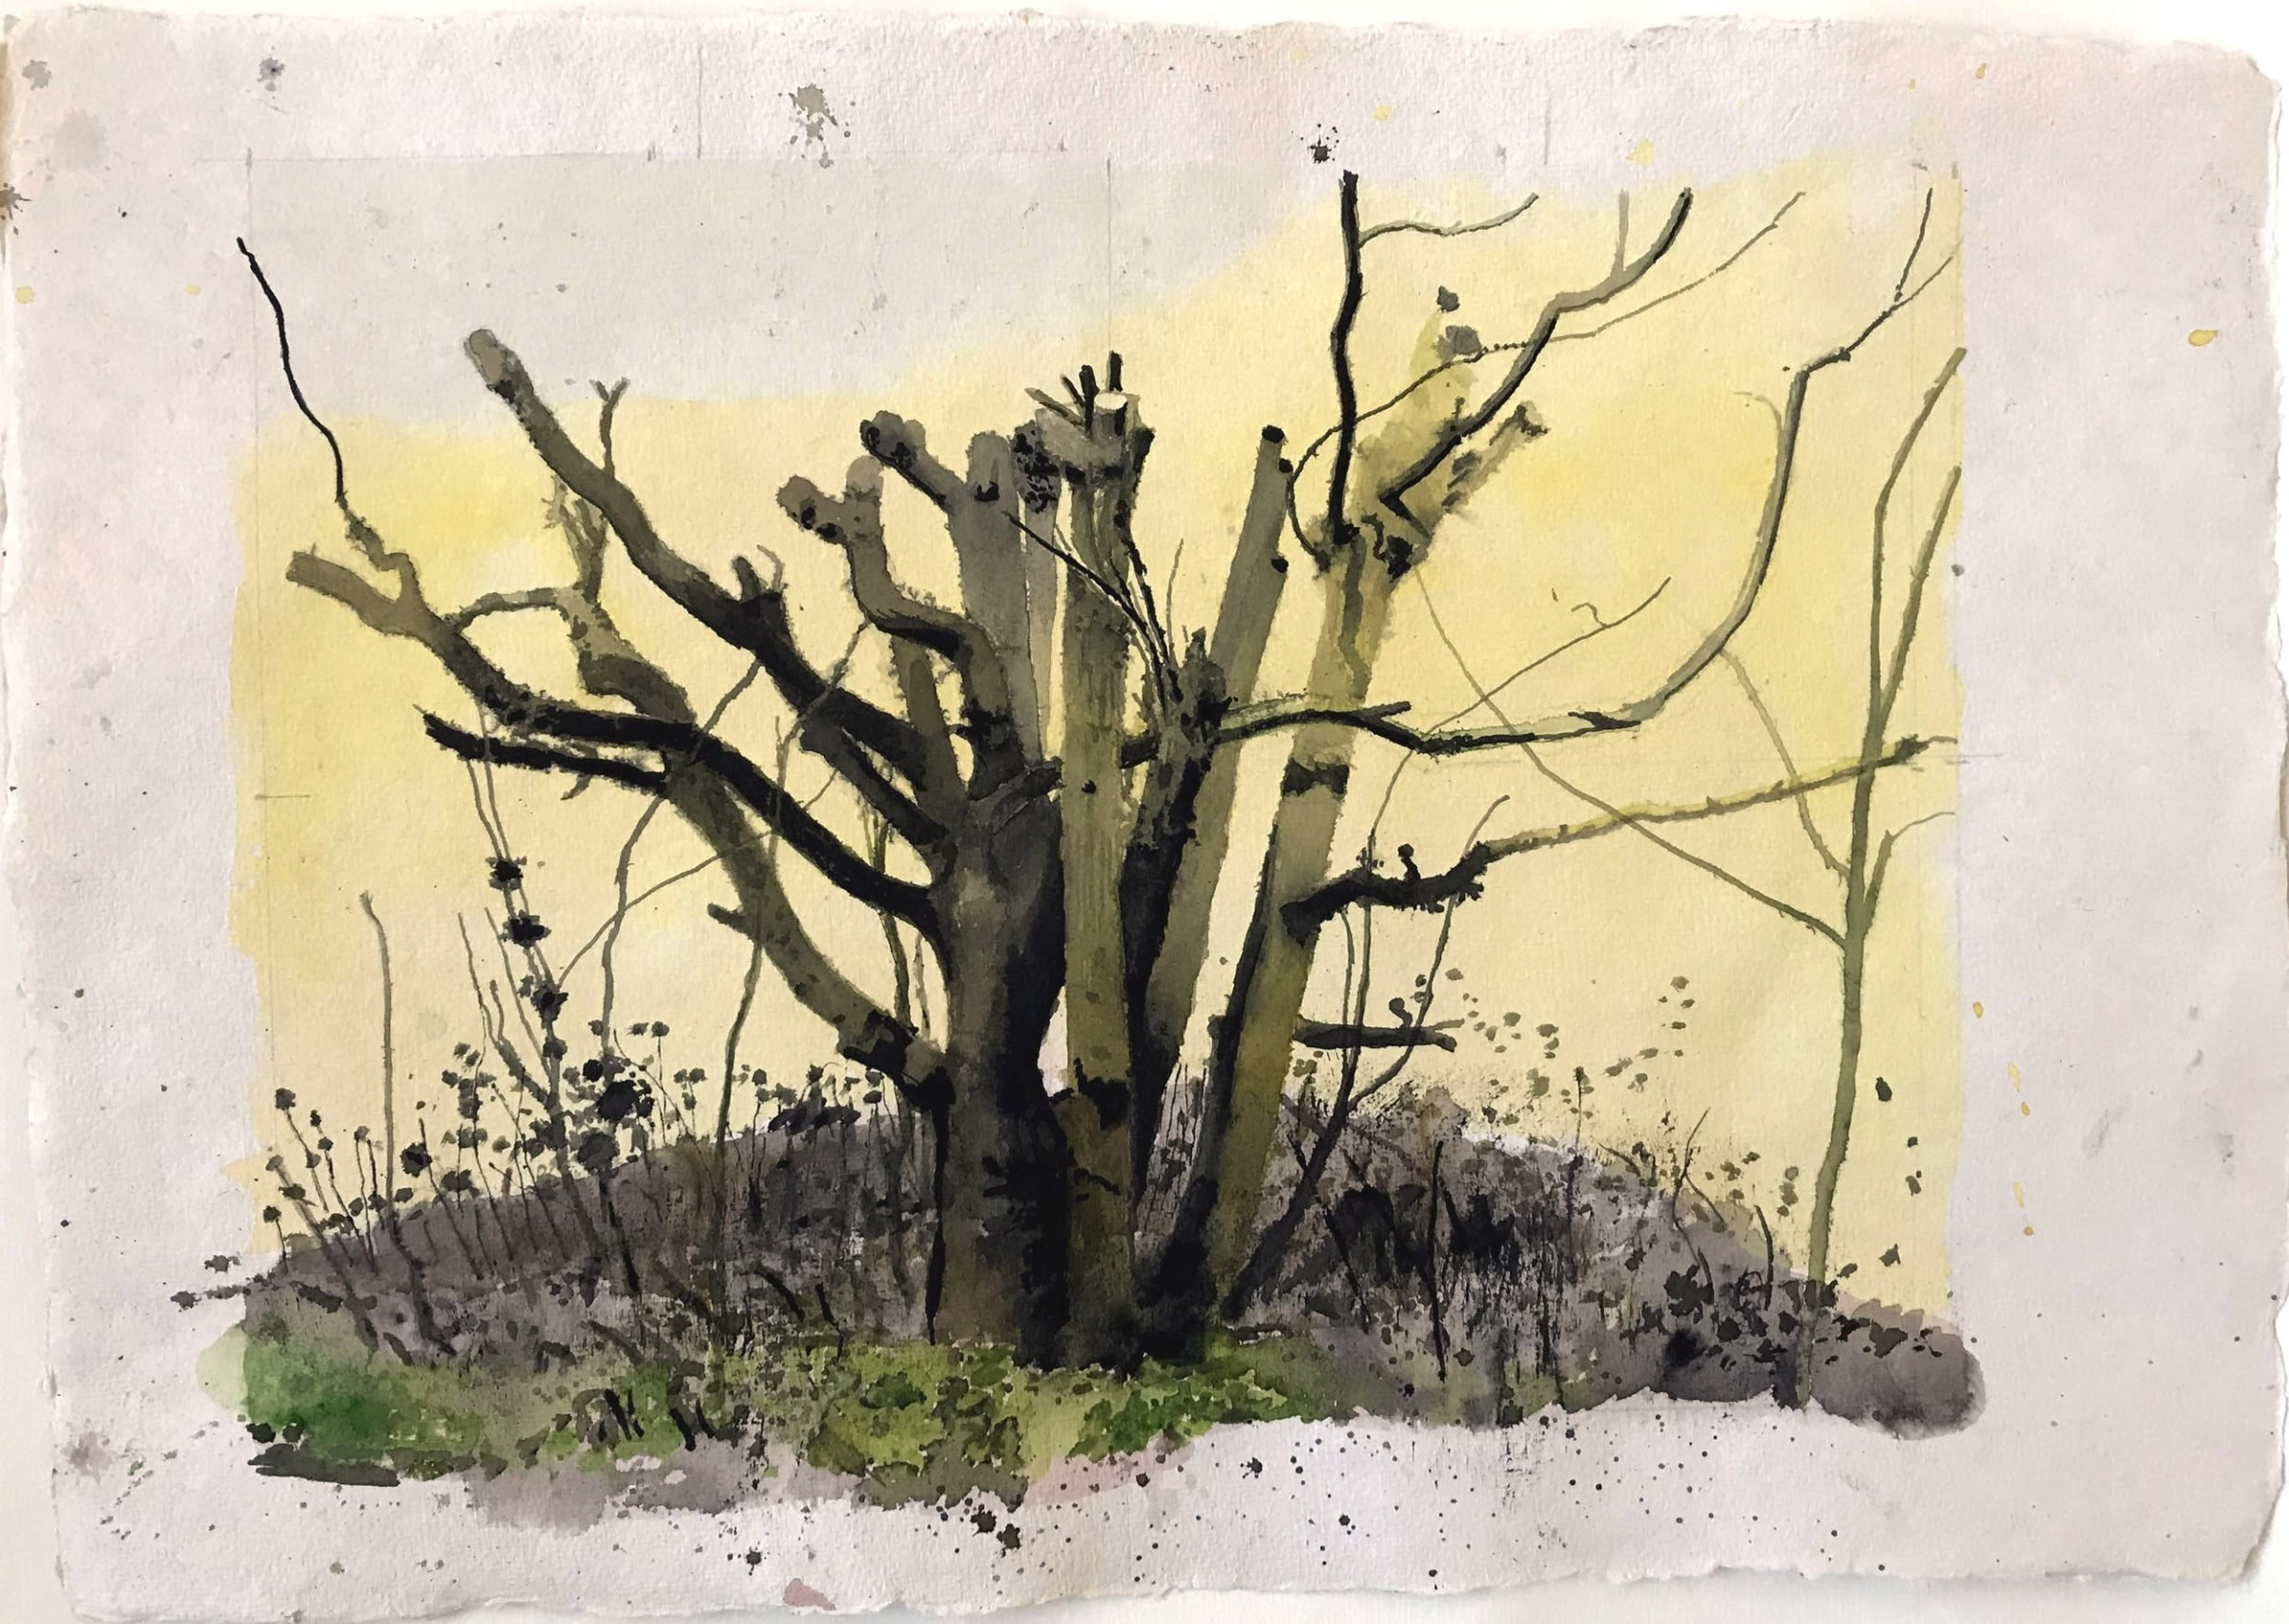 """<span class=""""link fancybox-details-link""""><a href=""""/artists/88-iain-nicholls/works/12121-iain-nicholls-elsecar-cropped-trees-study-2/"""">View Detail Page</a></span><div class=""""artist""""><span class=""""artist""""><strong>Iain Nicholls</strong></span></div><div class=""""title""""><em>Elsecar Cropped Trees Study 2</em></div><div class=""""medium"""">watercolour on paper mounted on board</div><div class=""""dimensions"""">Frame: 42 x 60 cm<br /> Artwork: 38 x 55 cm</div><div class=""""price"""">£420.00</div>"""